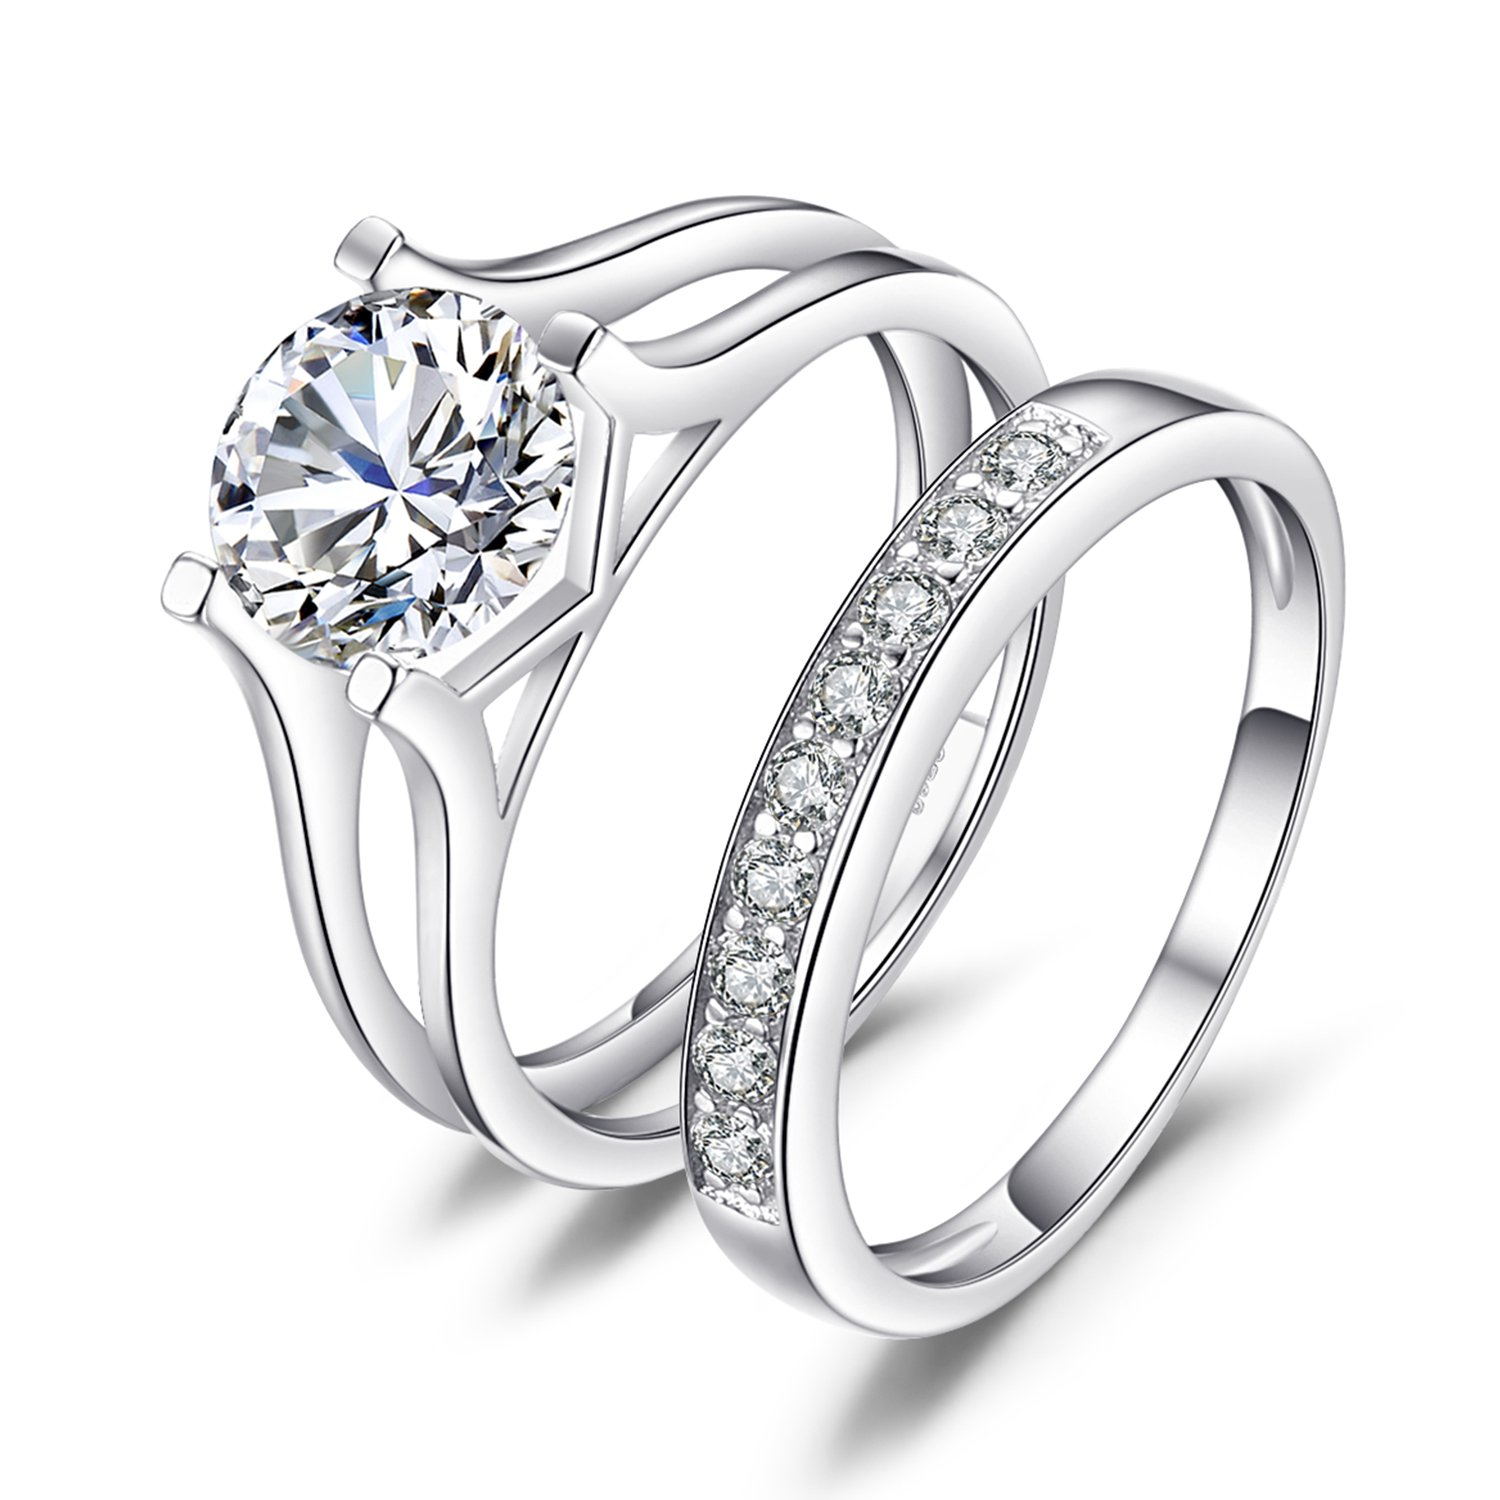 JewelryPalace 2ct Cubic Zirconia Anniversary Wedding Band Solitaire Engagement Ring Bridal Channel Set 925 Sterling Silver BR006299